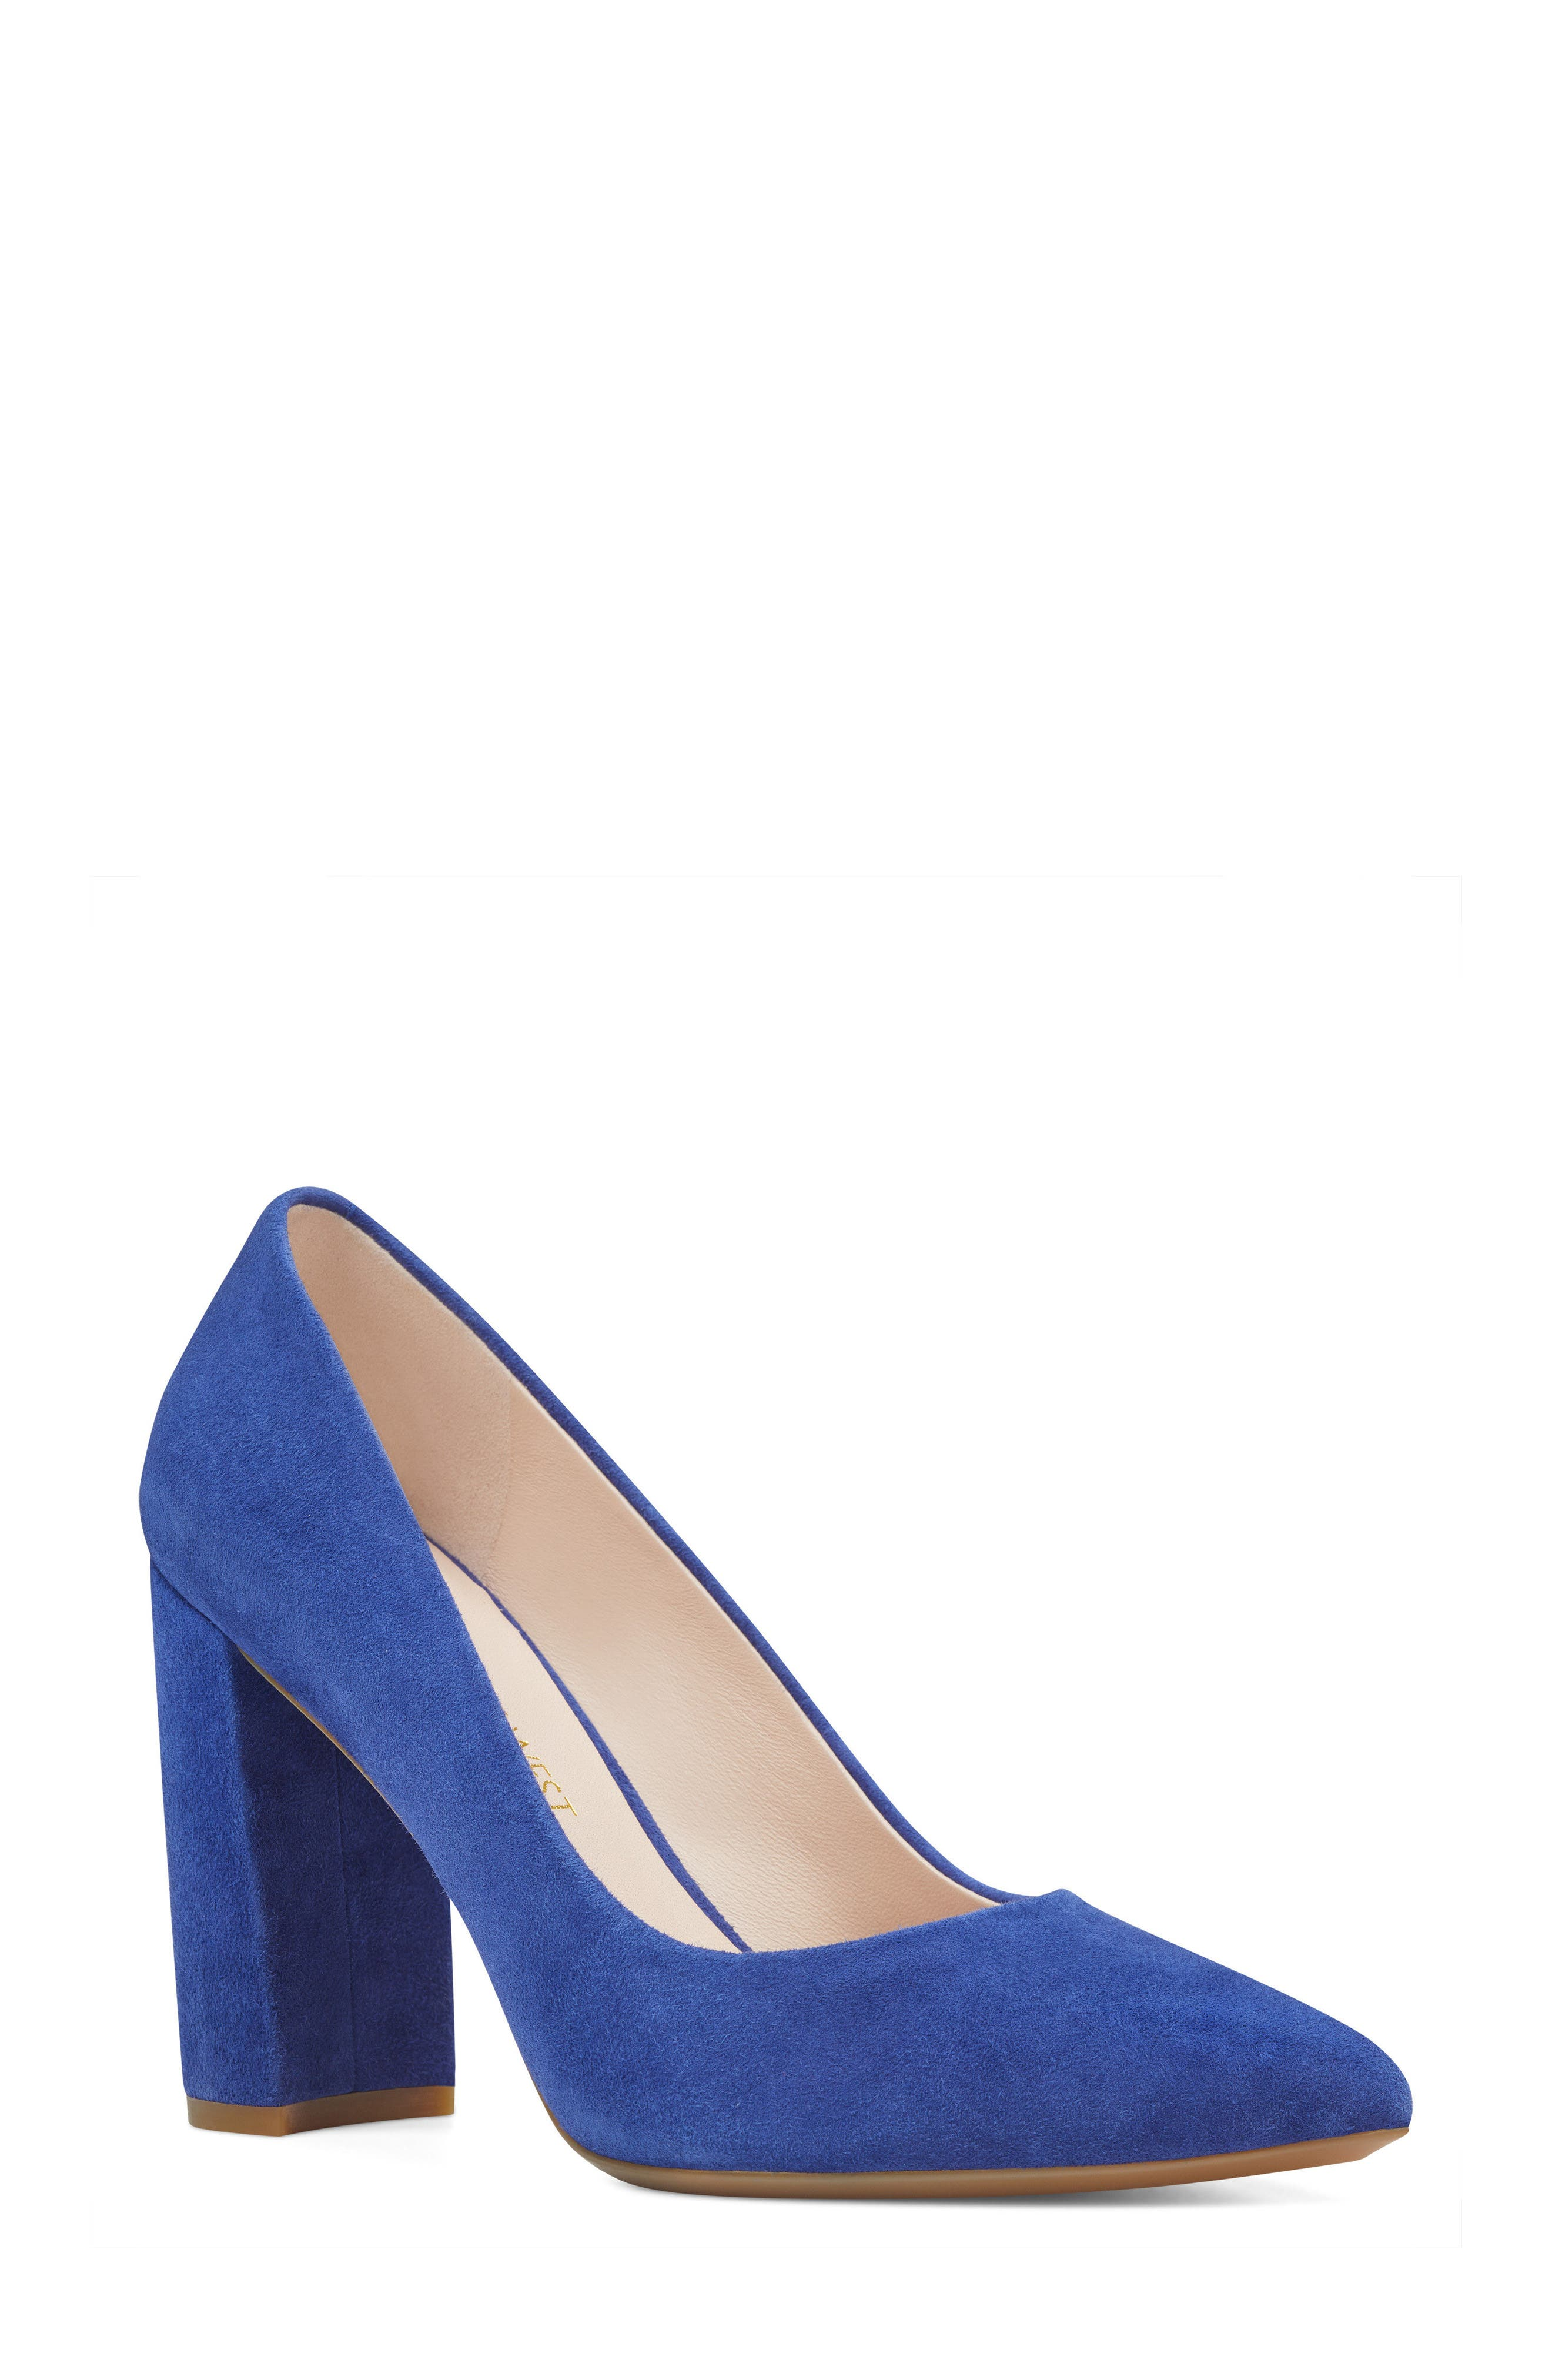 Astoria Pump,                         Main,                         color, DARK BLUE SUEDE